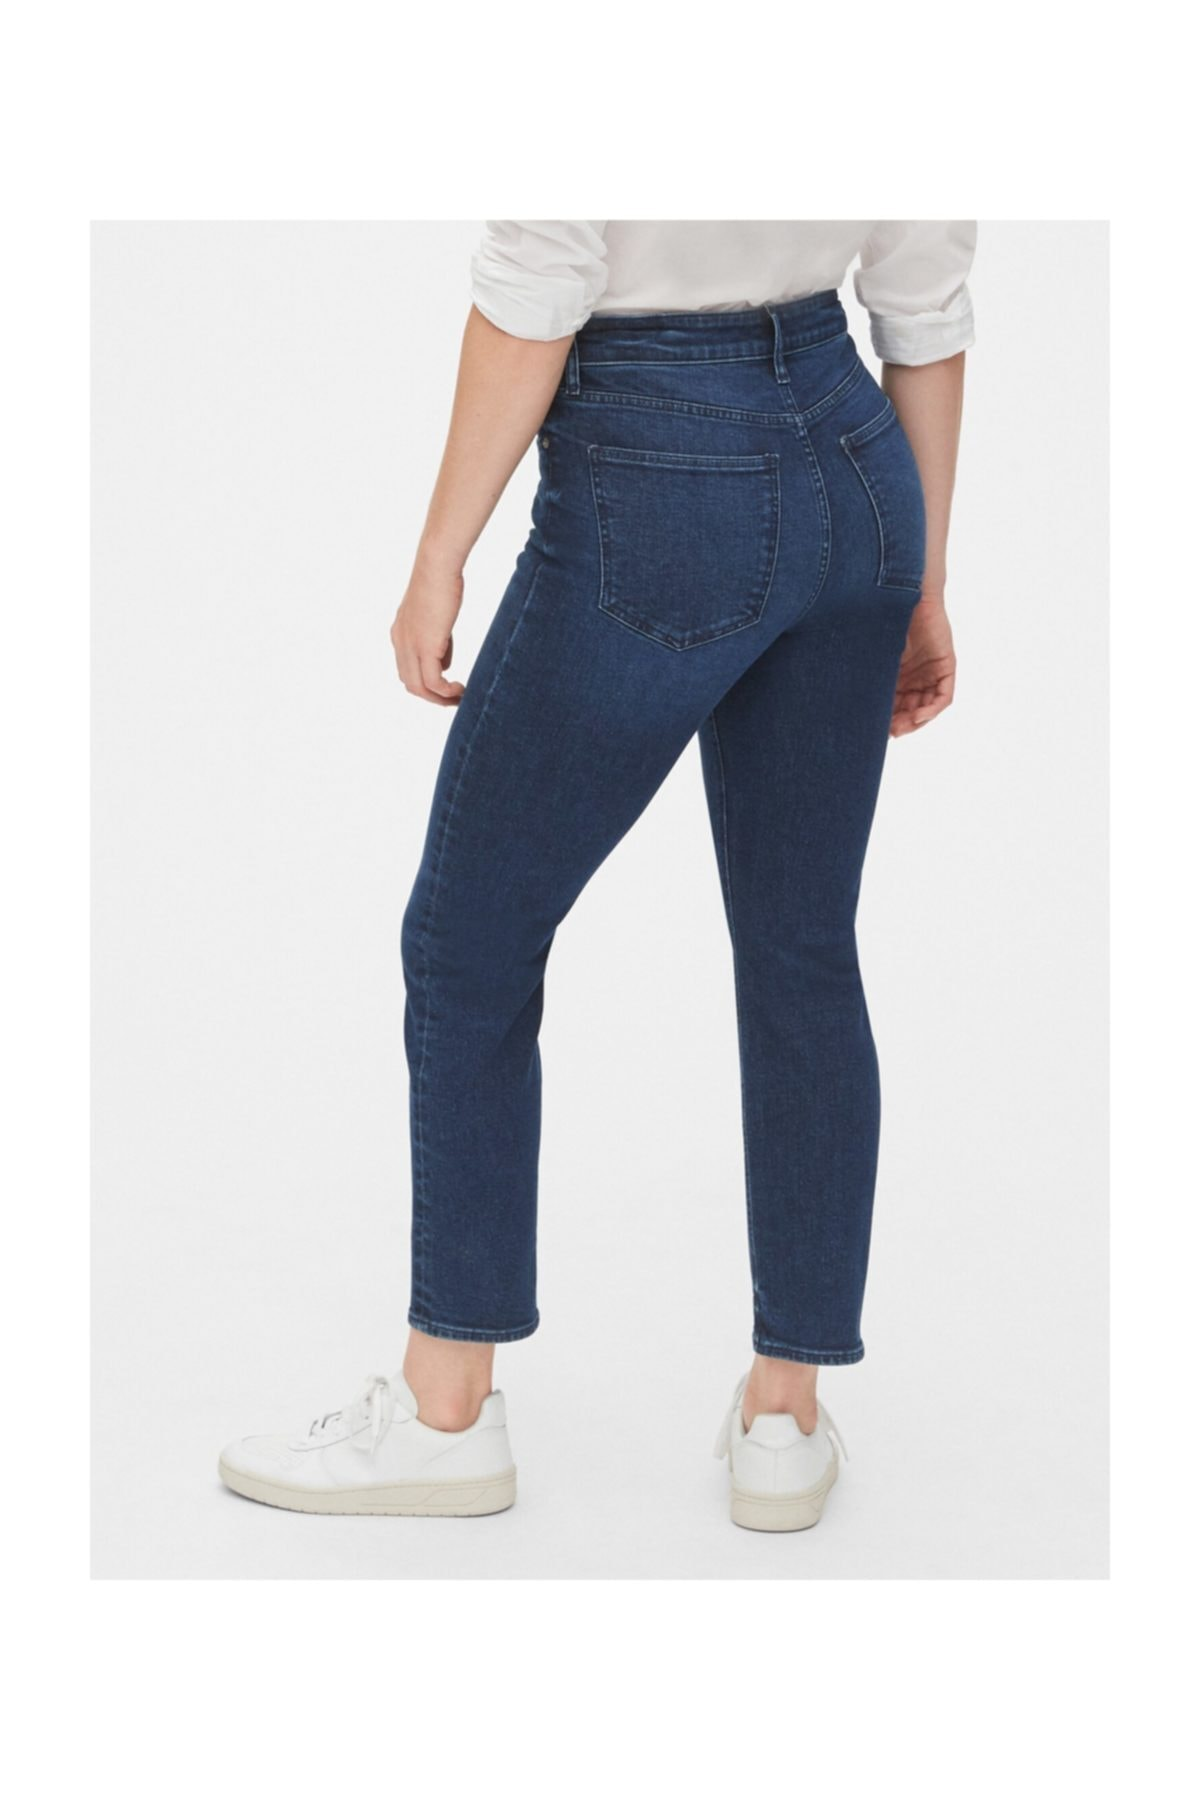 GAP High Rise Cigarette Jean Pantolon 2